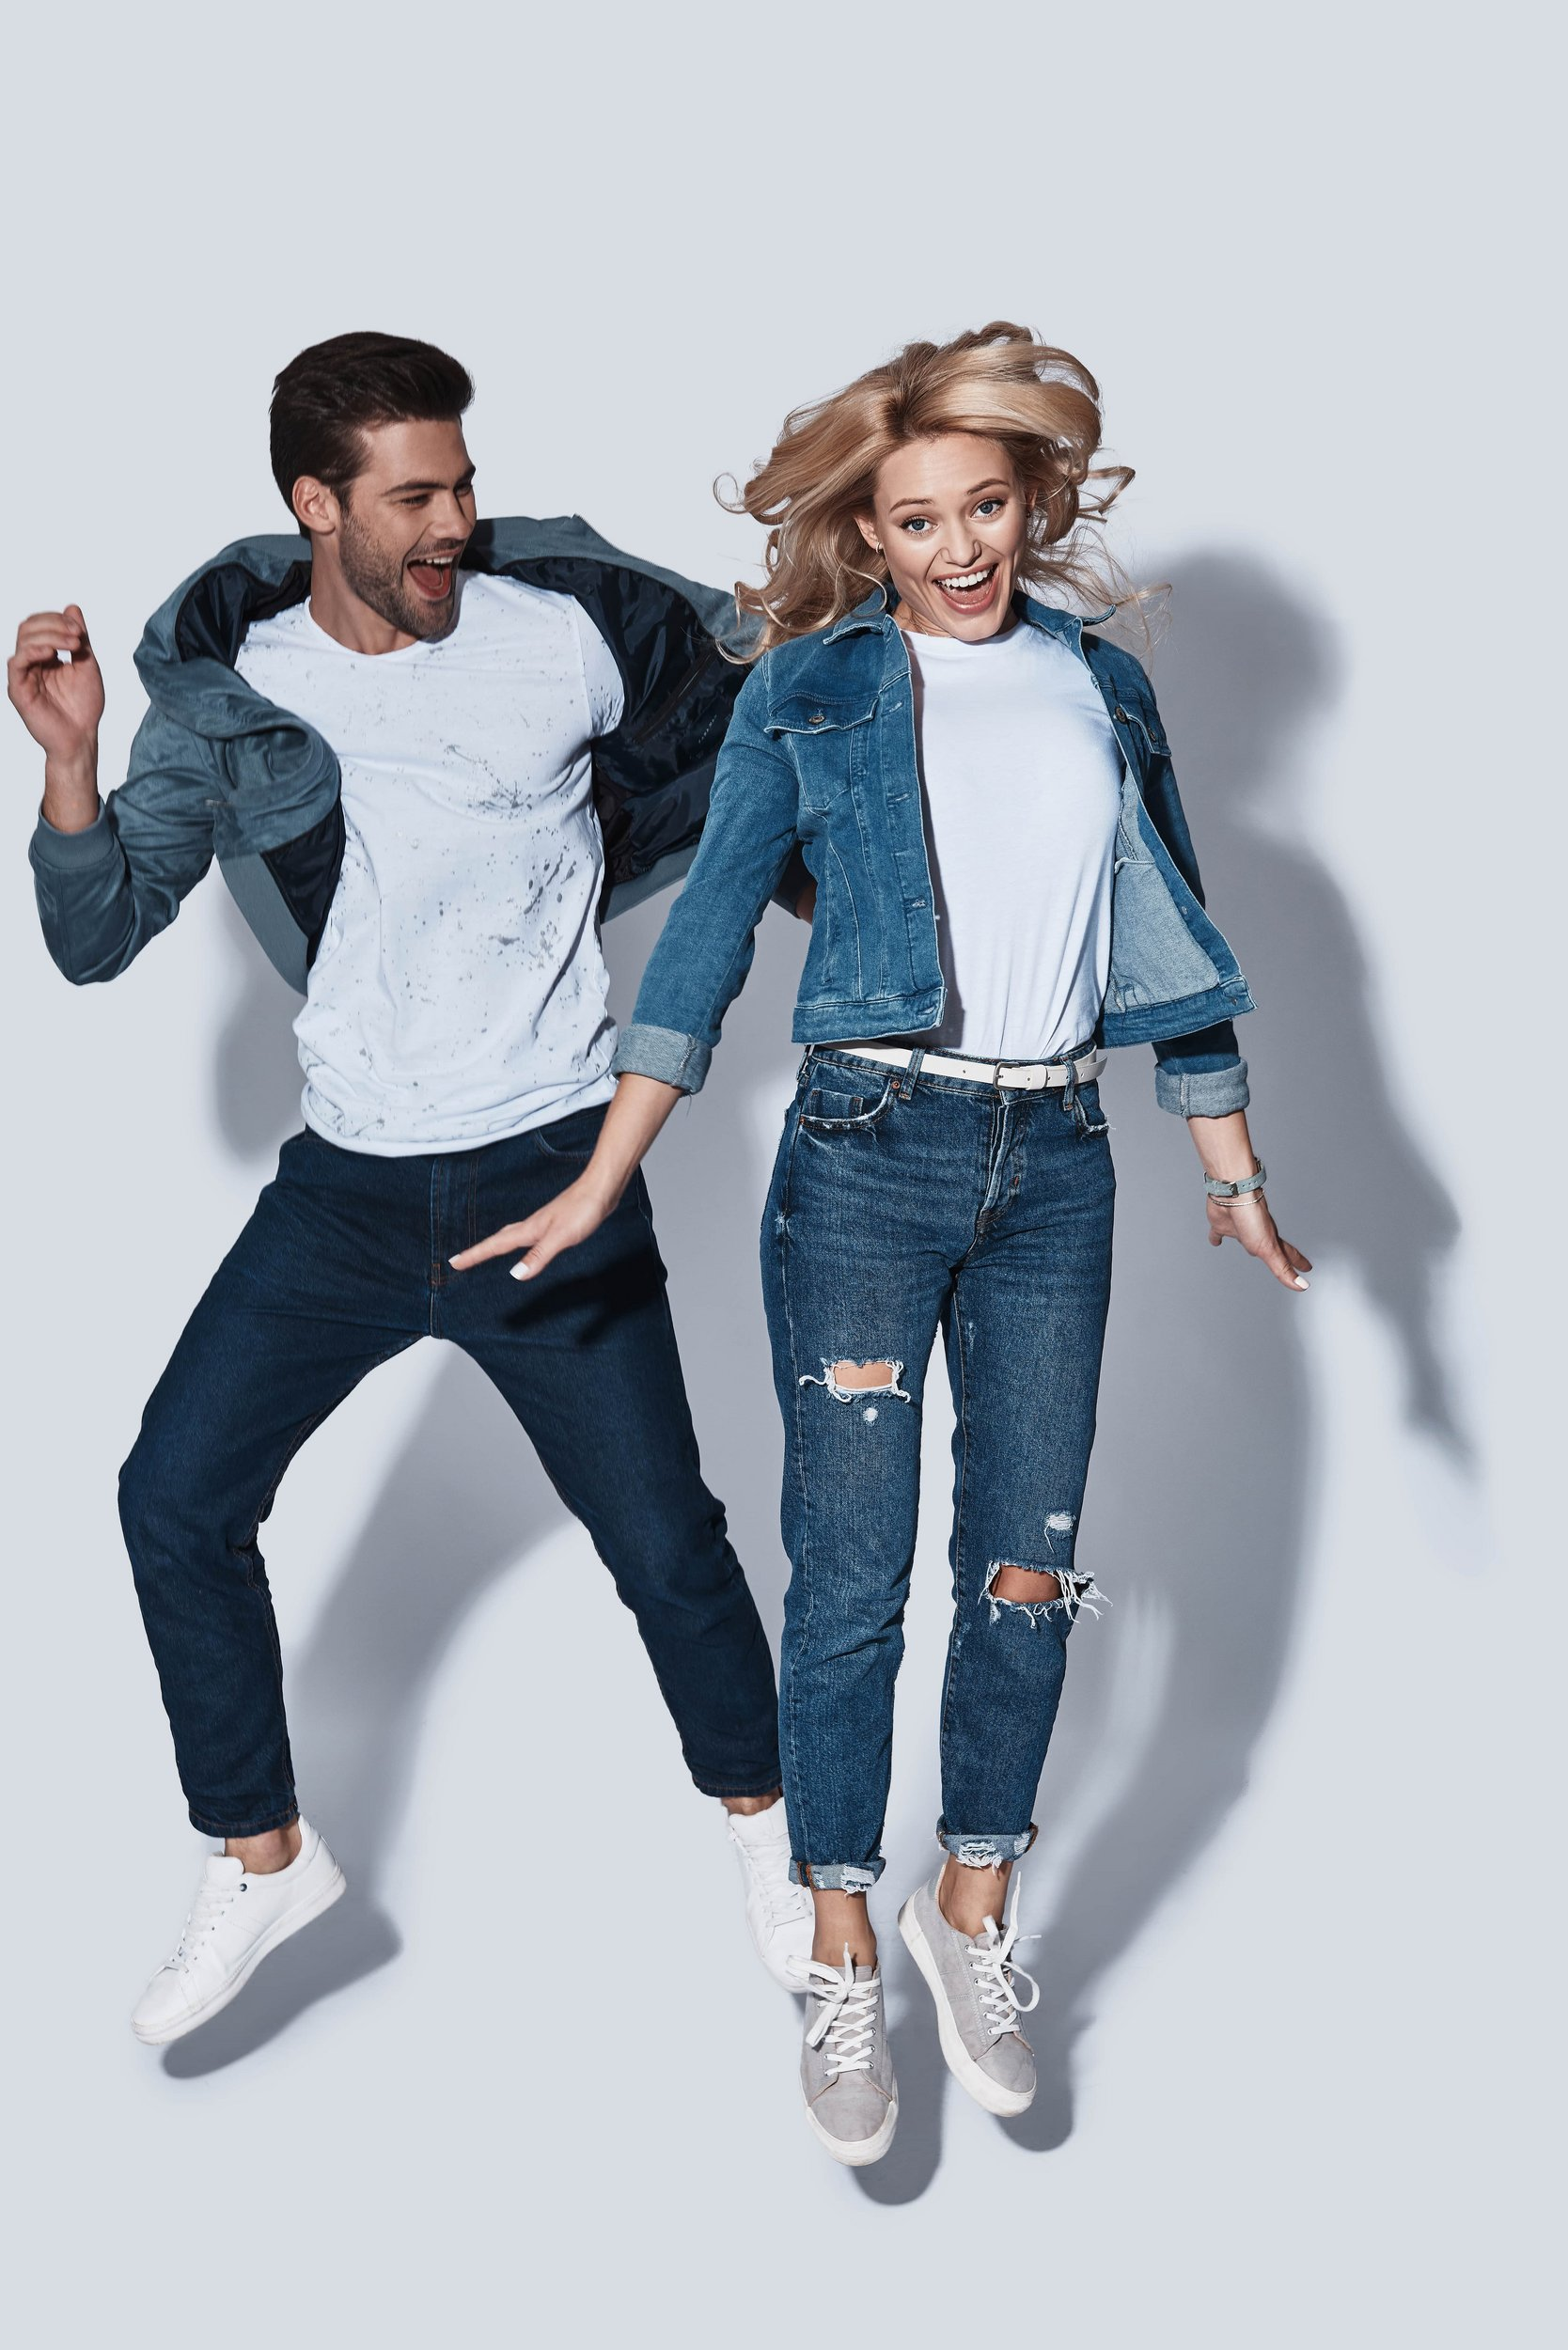 Jeans and shirts of happy couple